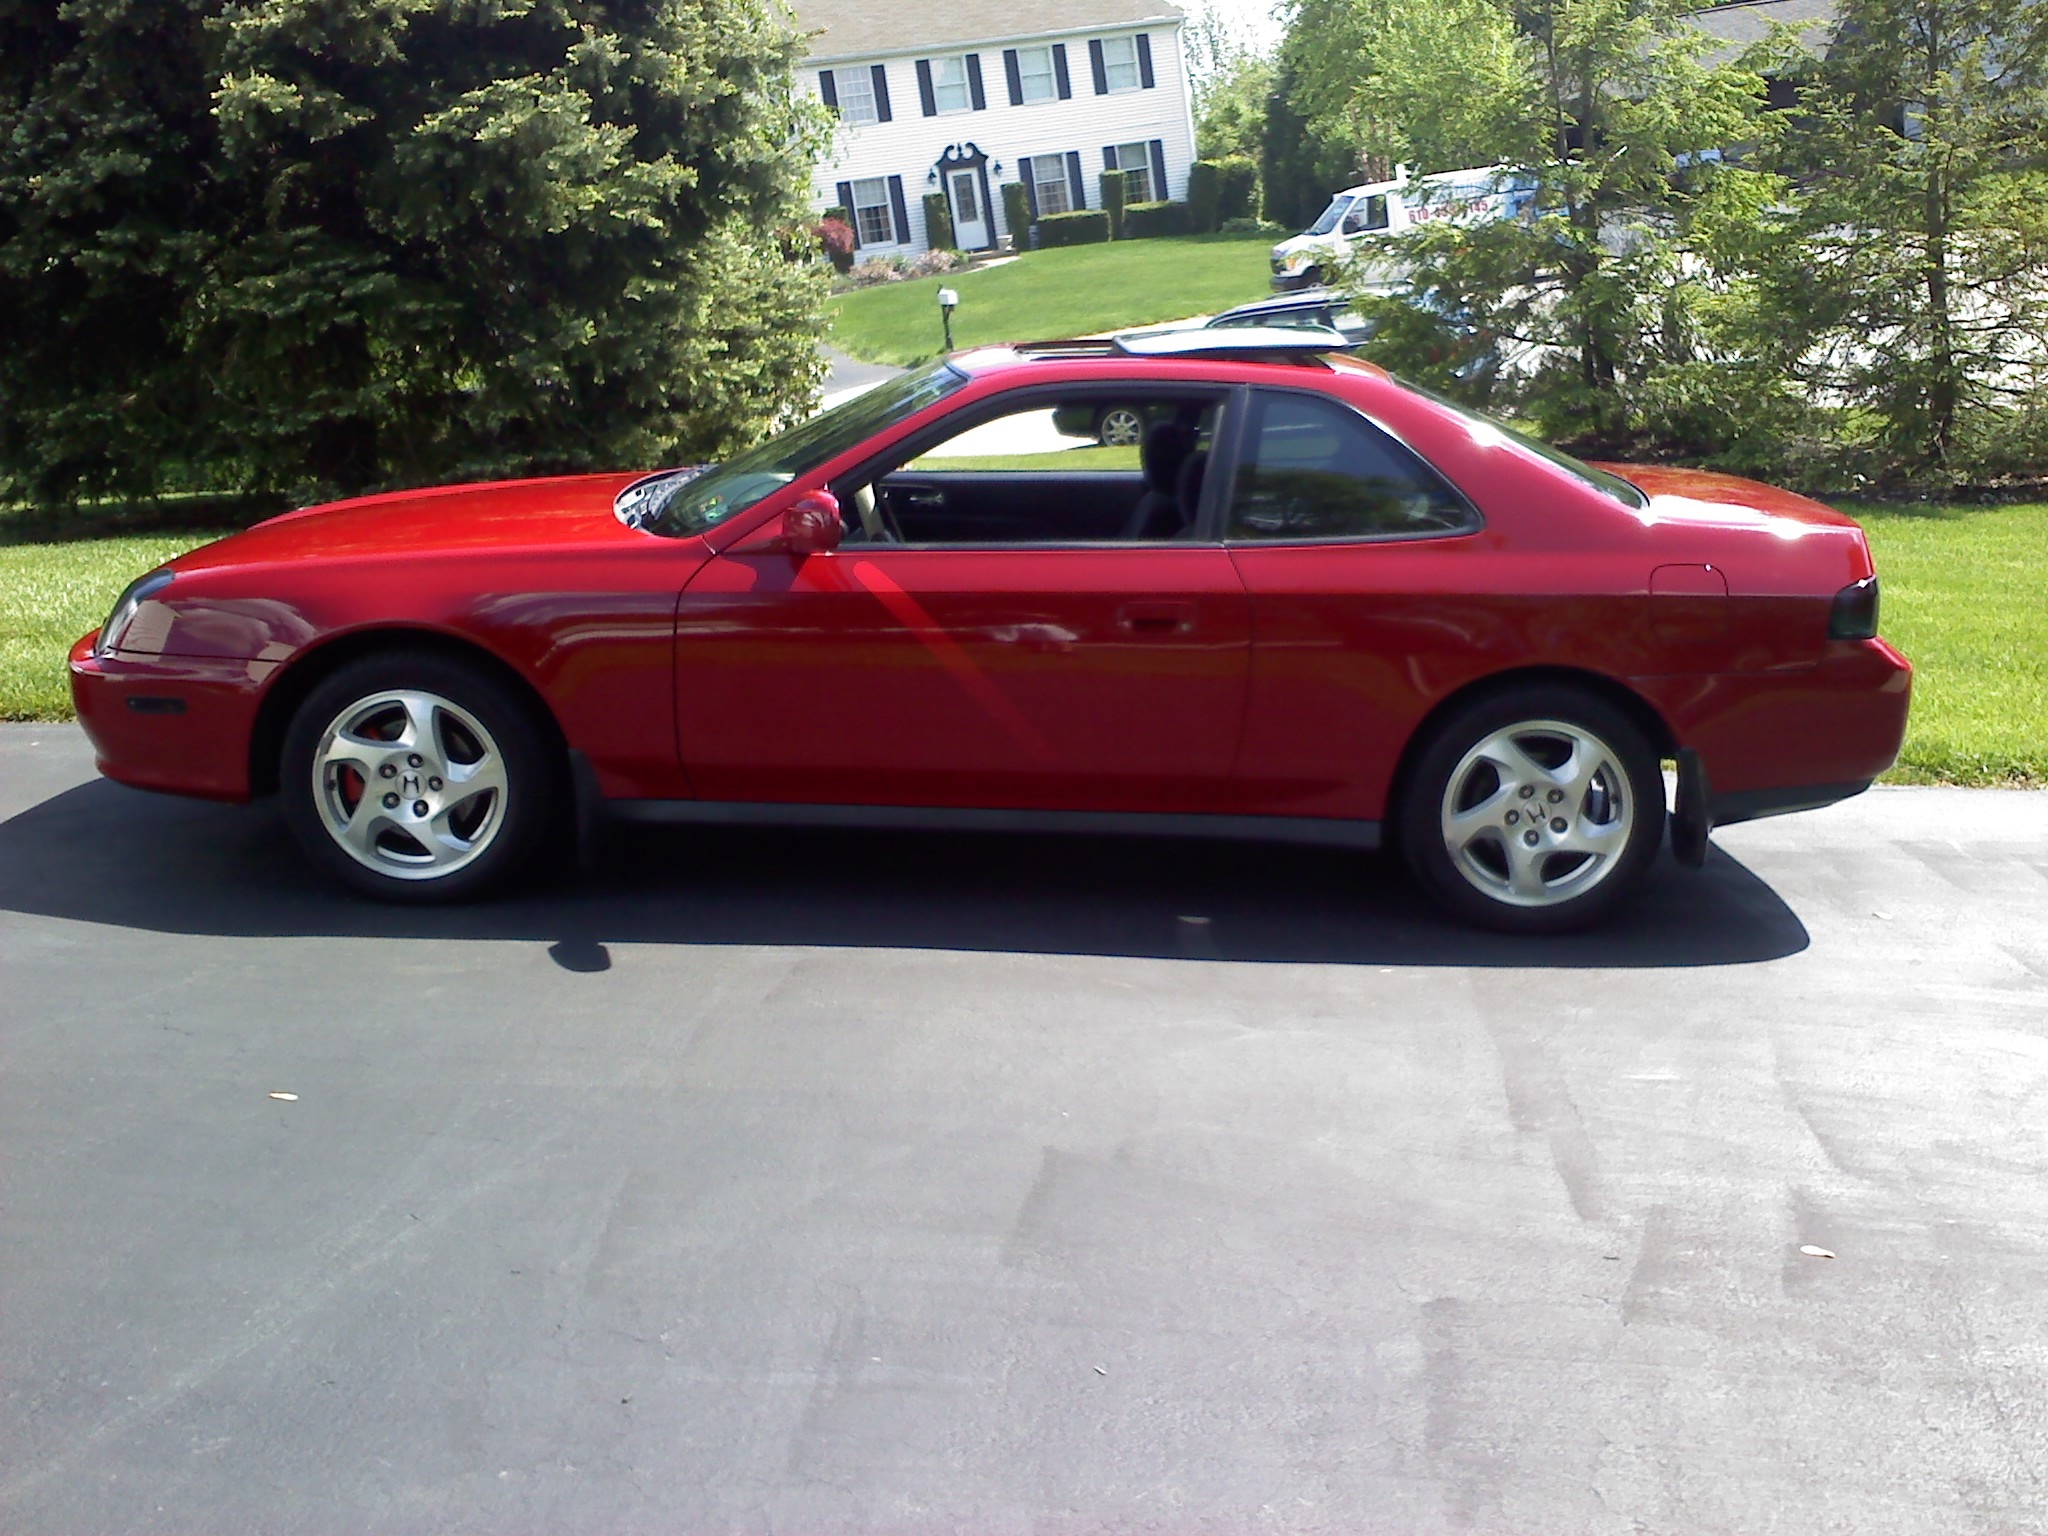 Timblah88 S 1998 Honda Prelude In West Chester Pa